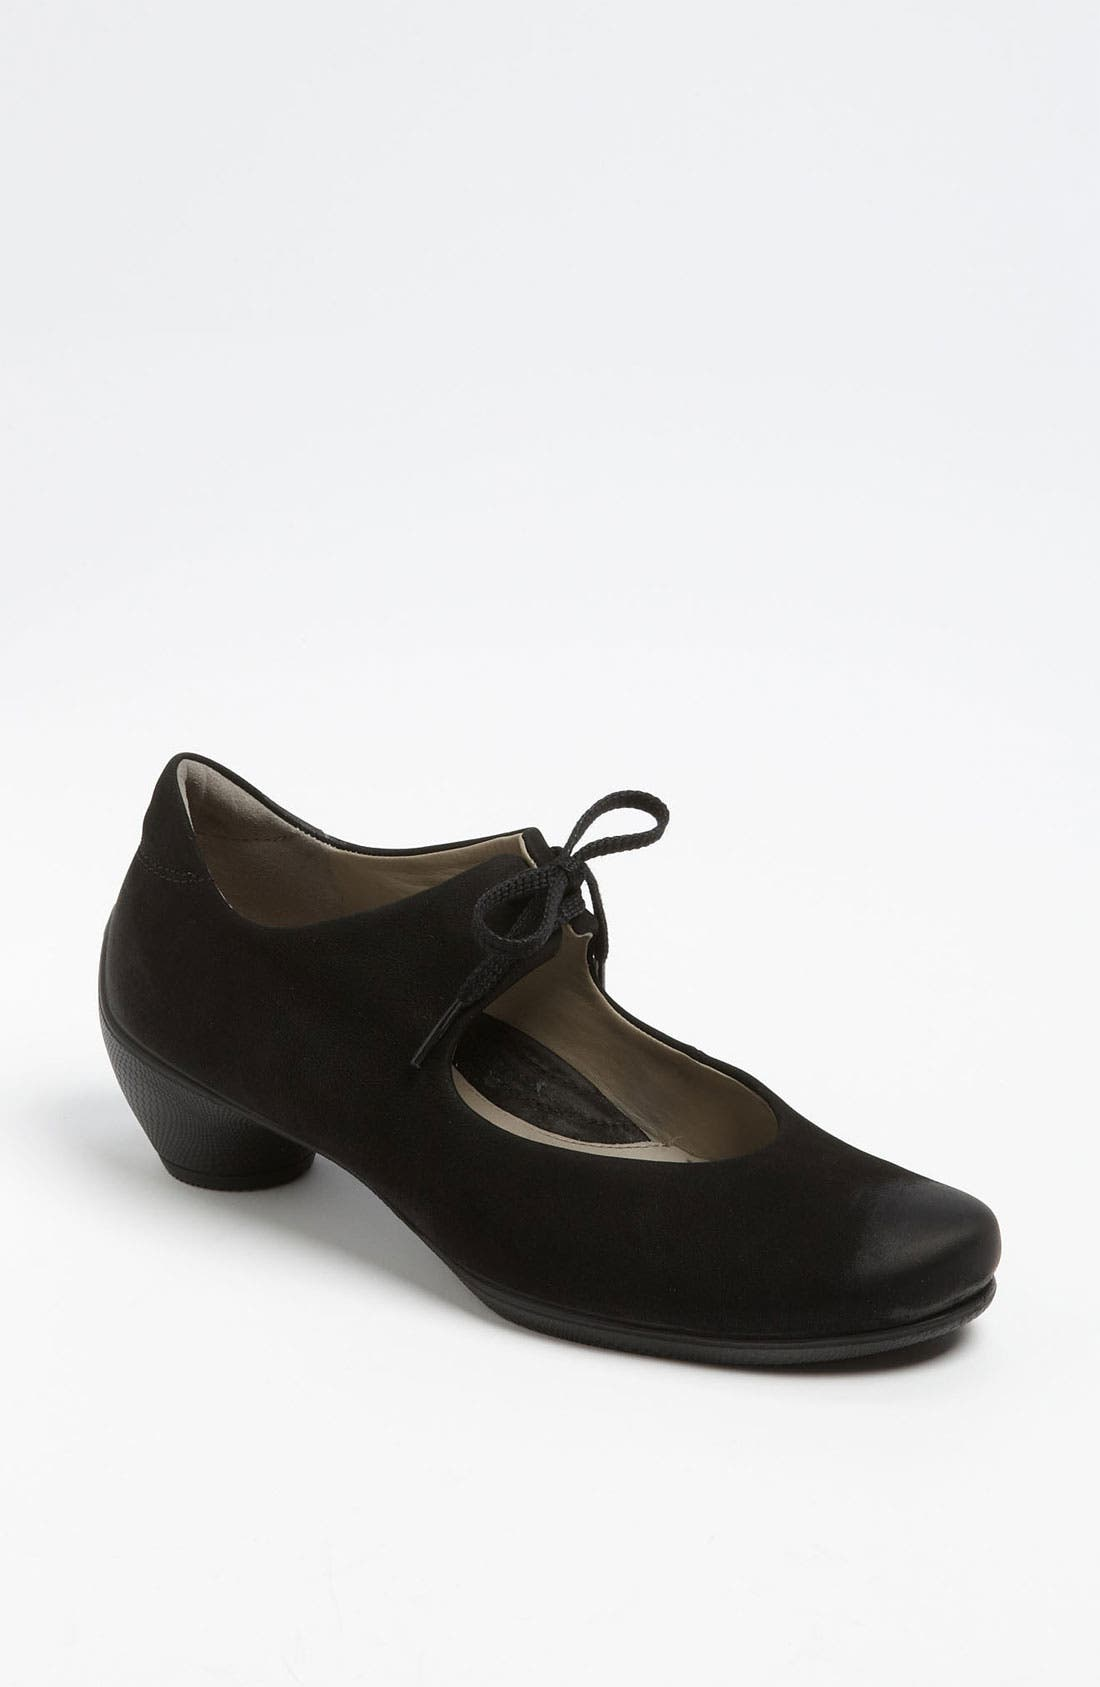 Alternate Image 1 Selected - ECCO 'Sculptured Lace' Mary Jane Pump